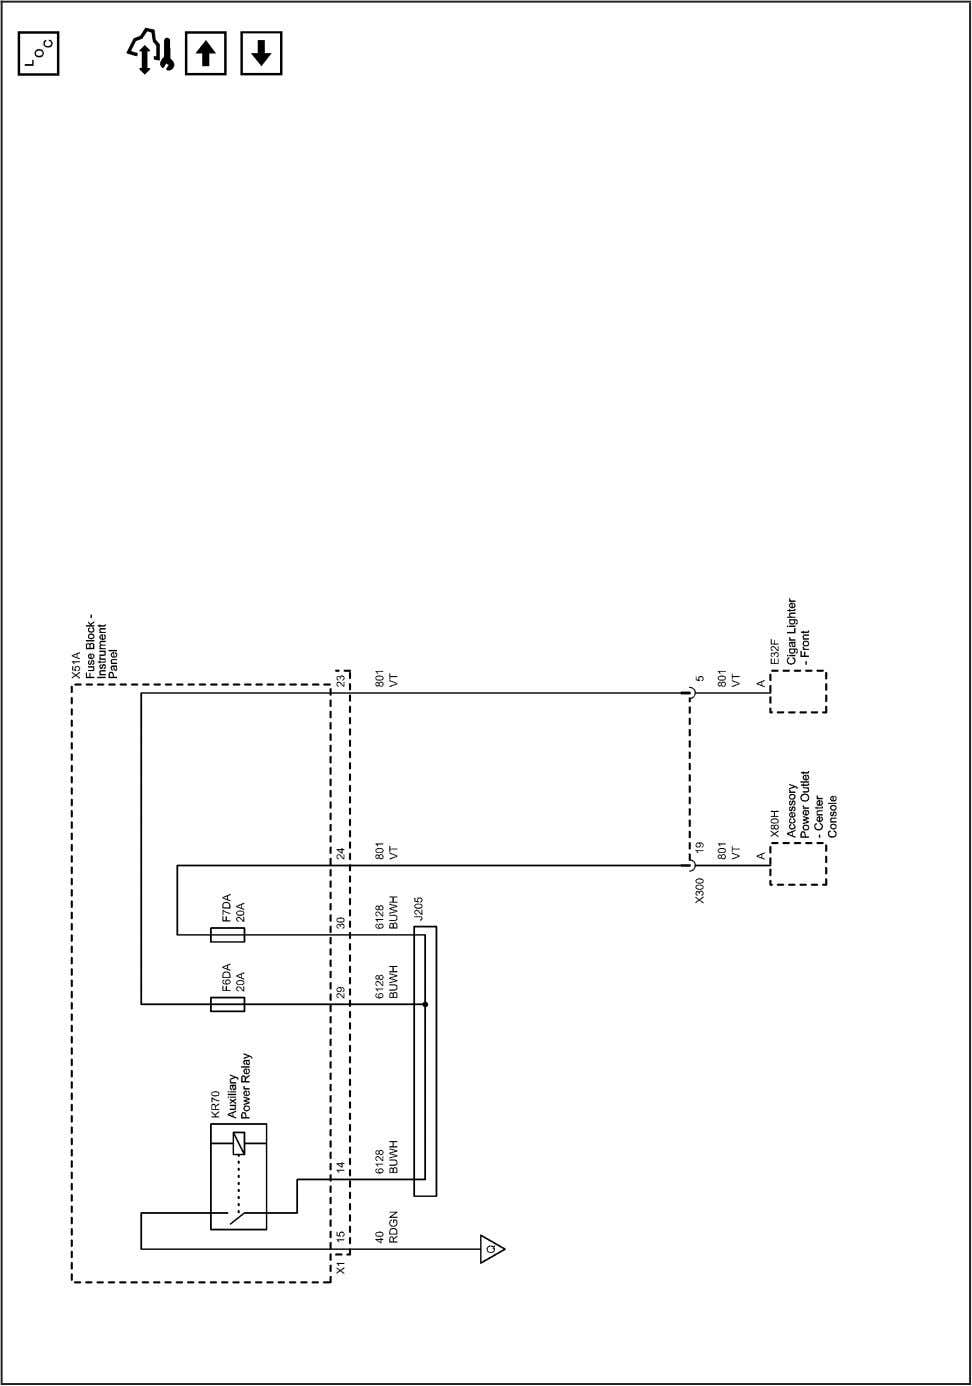 Systems and Power Management 2203150 Power Distribution Schematics (F6DA and F7DA Fuses) 2010 - Cruze Service